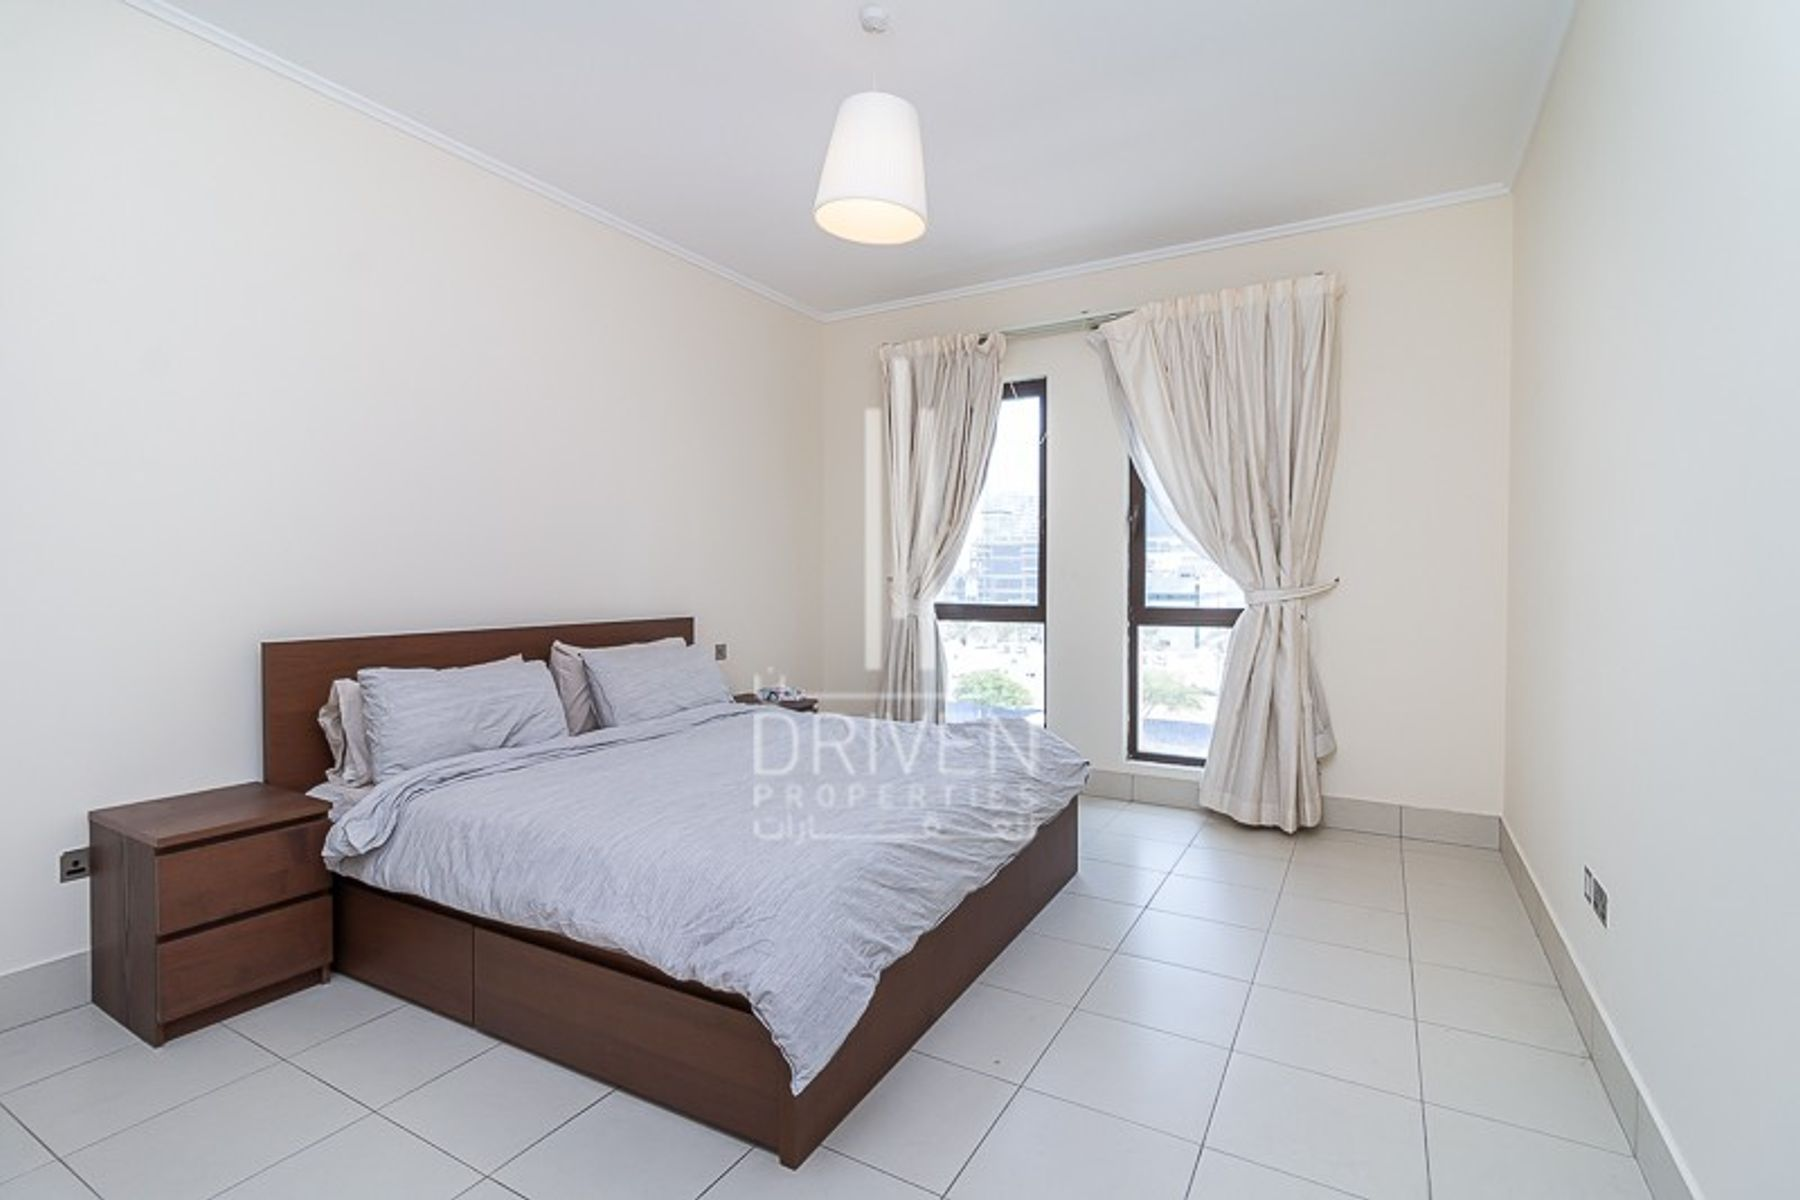 Apartment for Rent in Reehan 6 - Old Town